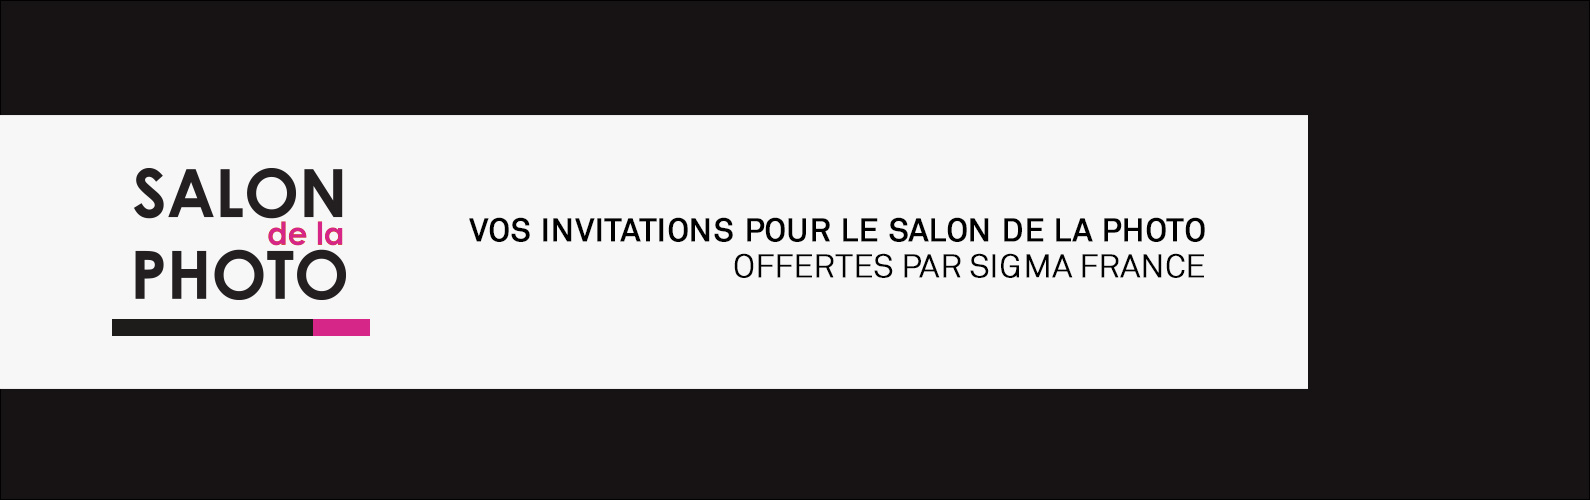 Vos invitations pour le Salon de la Photo à Paris